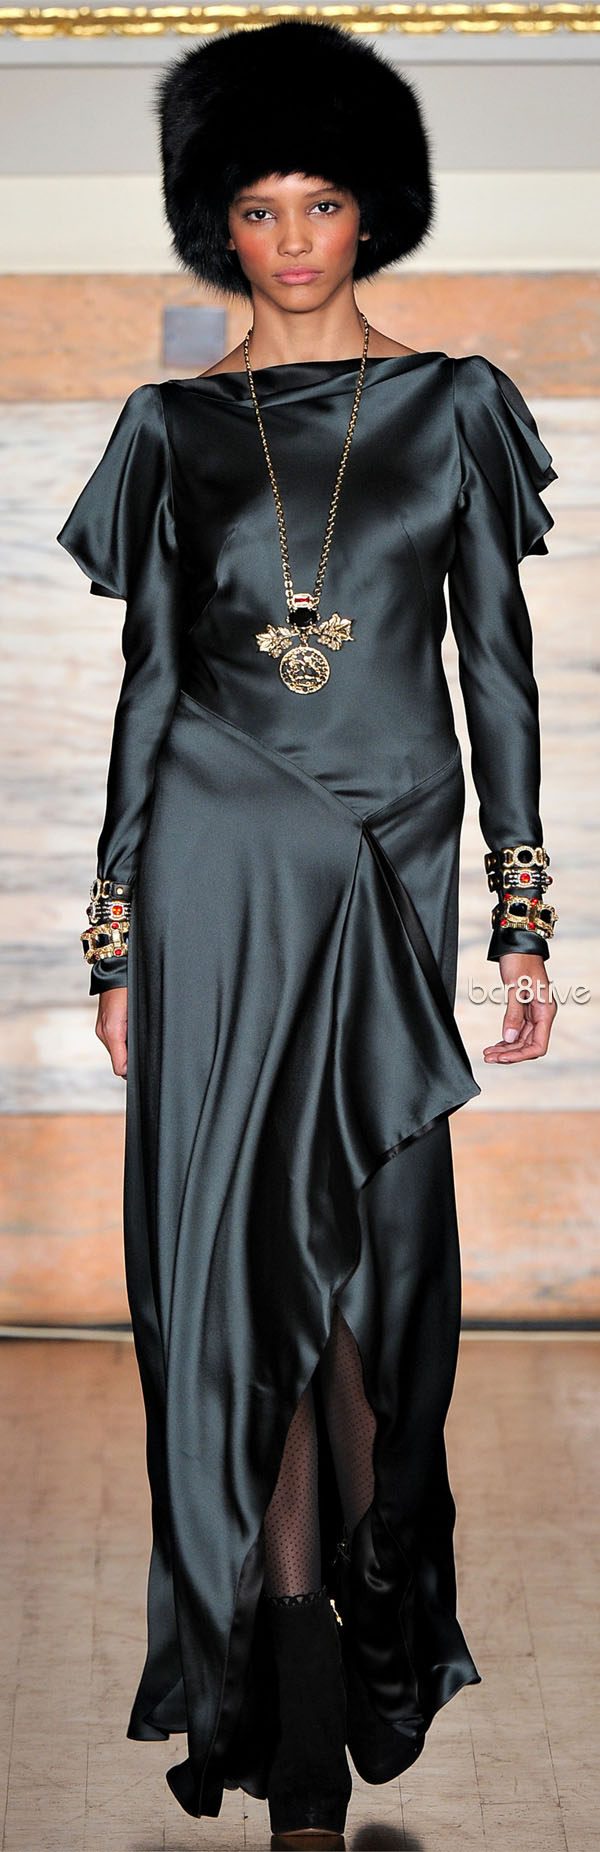 Temperley London Fall Winter 2012-13 Collection _032